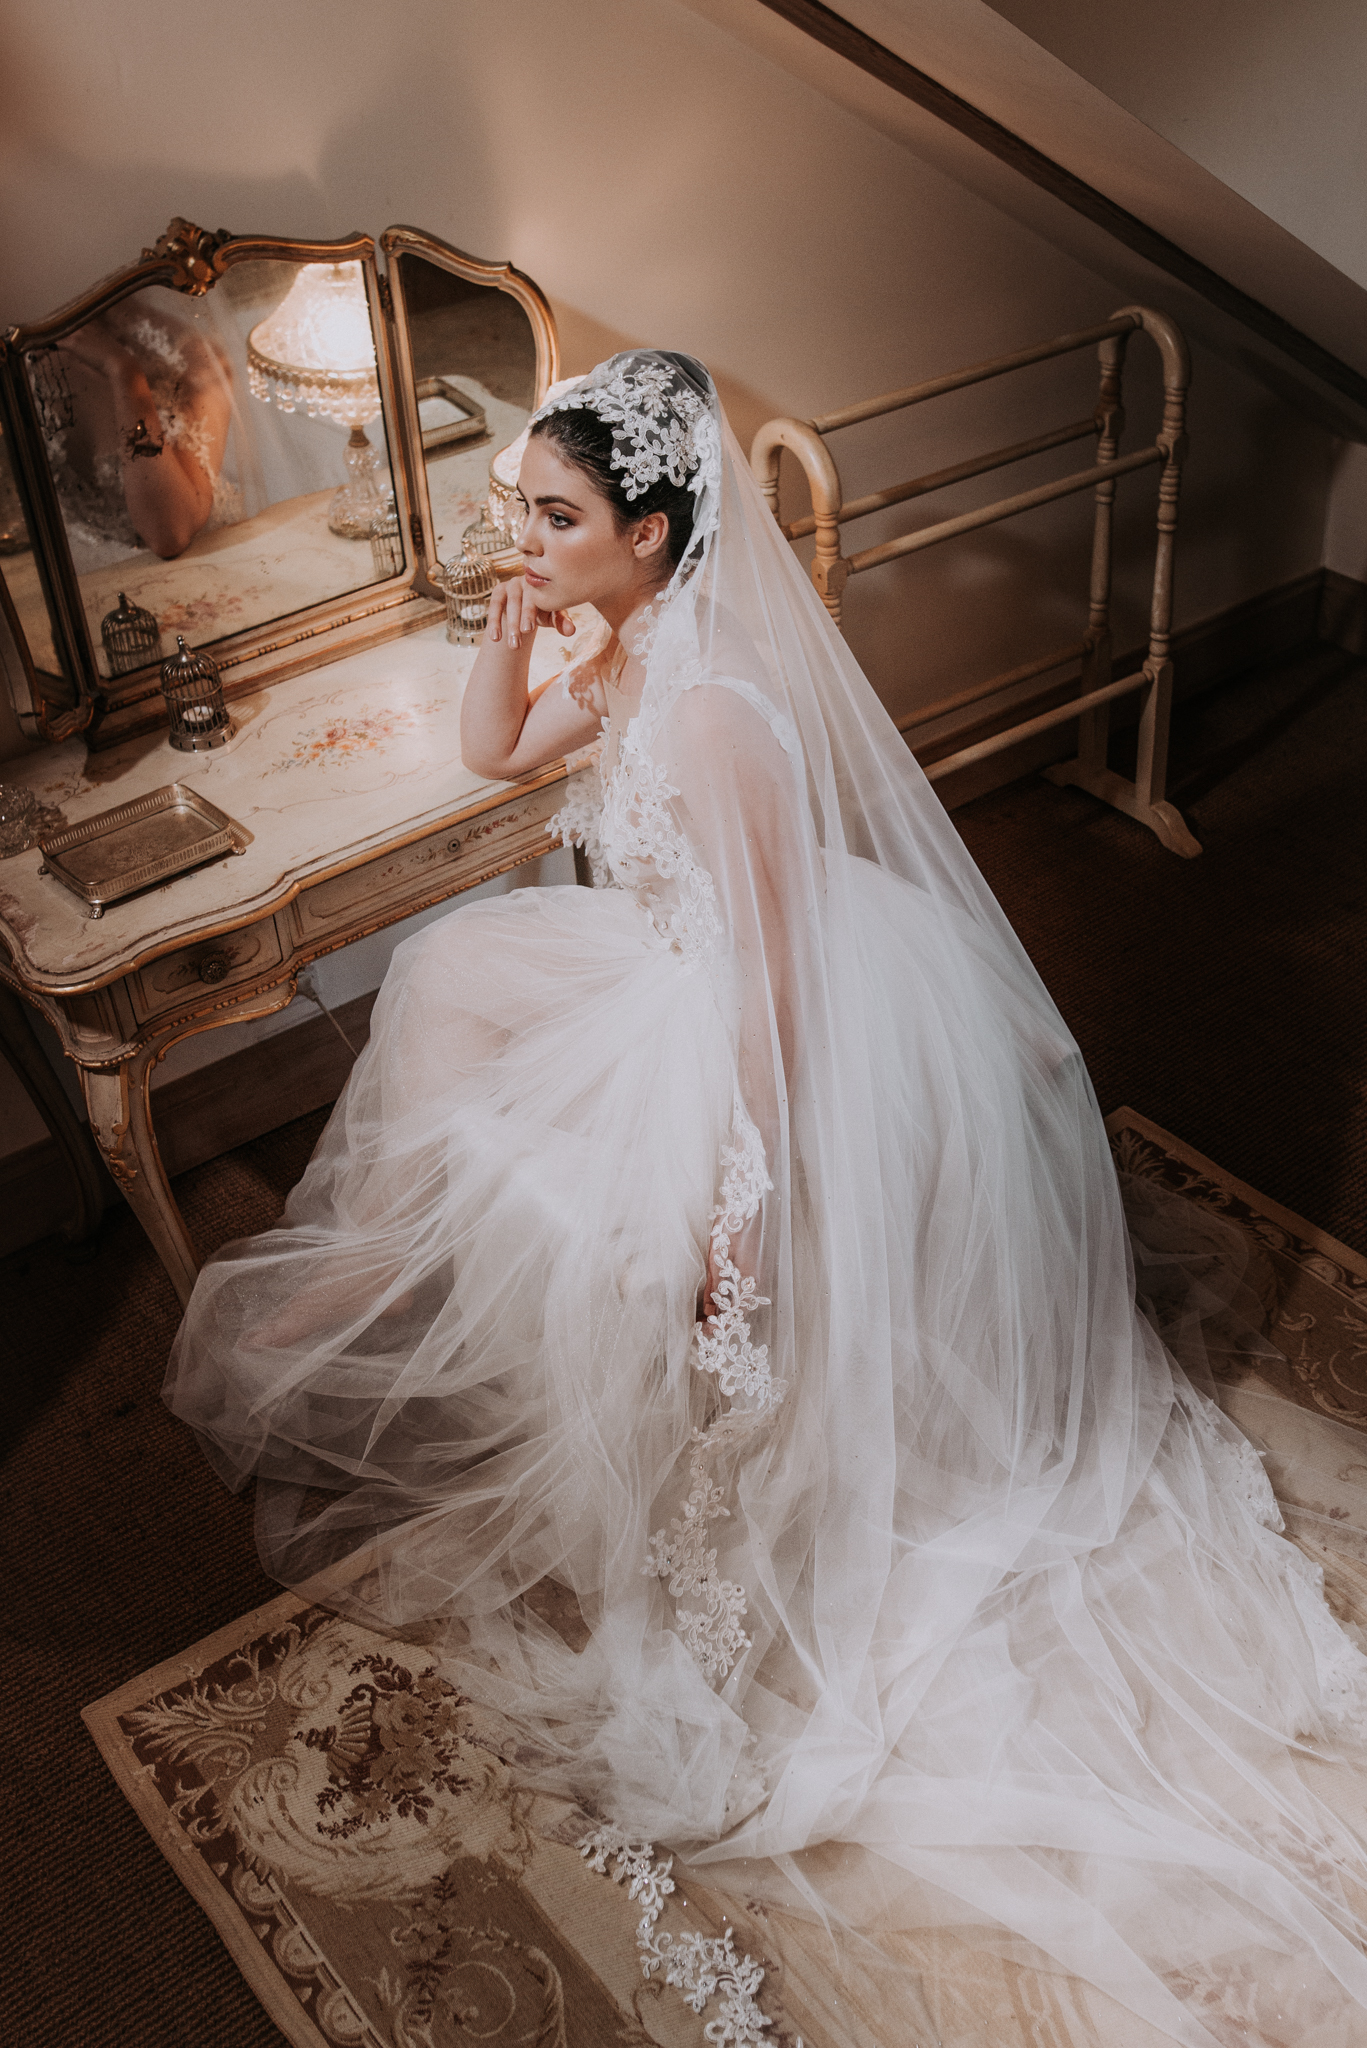 Lovelenscapes Photography X Ulyana Aster Bridal • Les Deux Belettes • Leigh McCoy • Bloodwood Botanica • Alena Iano • Alisa Rudnev • Demi Groot • Jessie Lockley • Maddison Ruby • 134.jpg